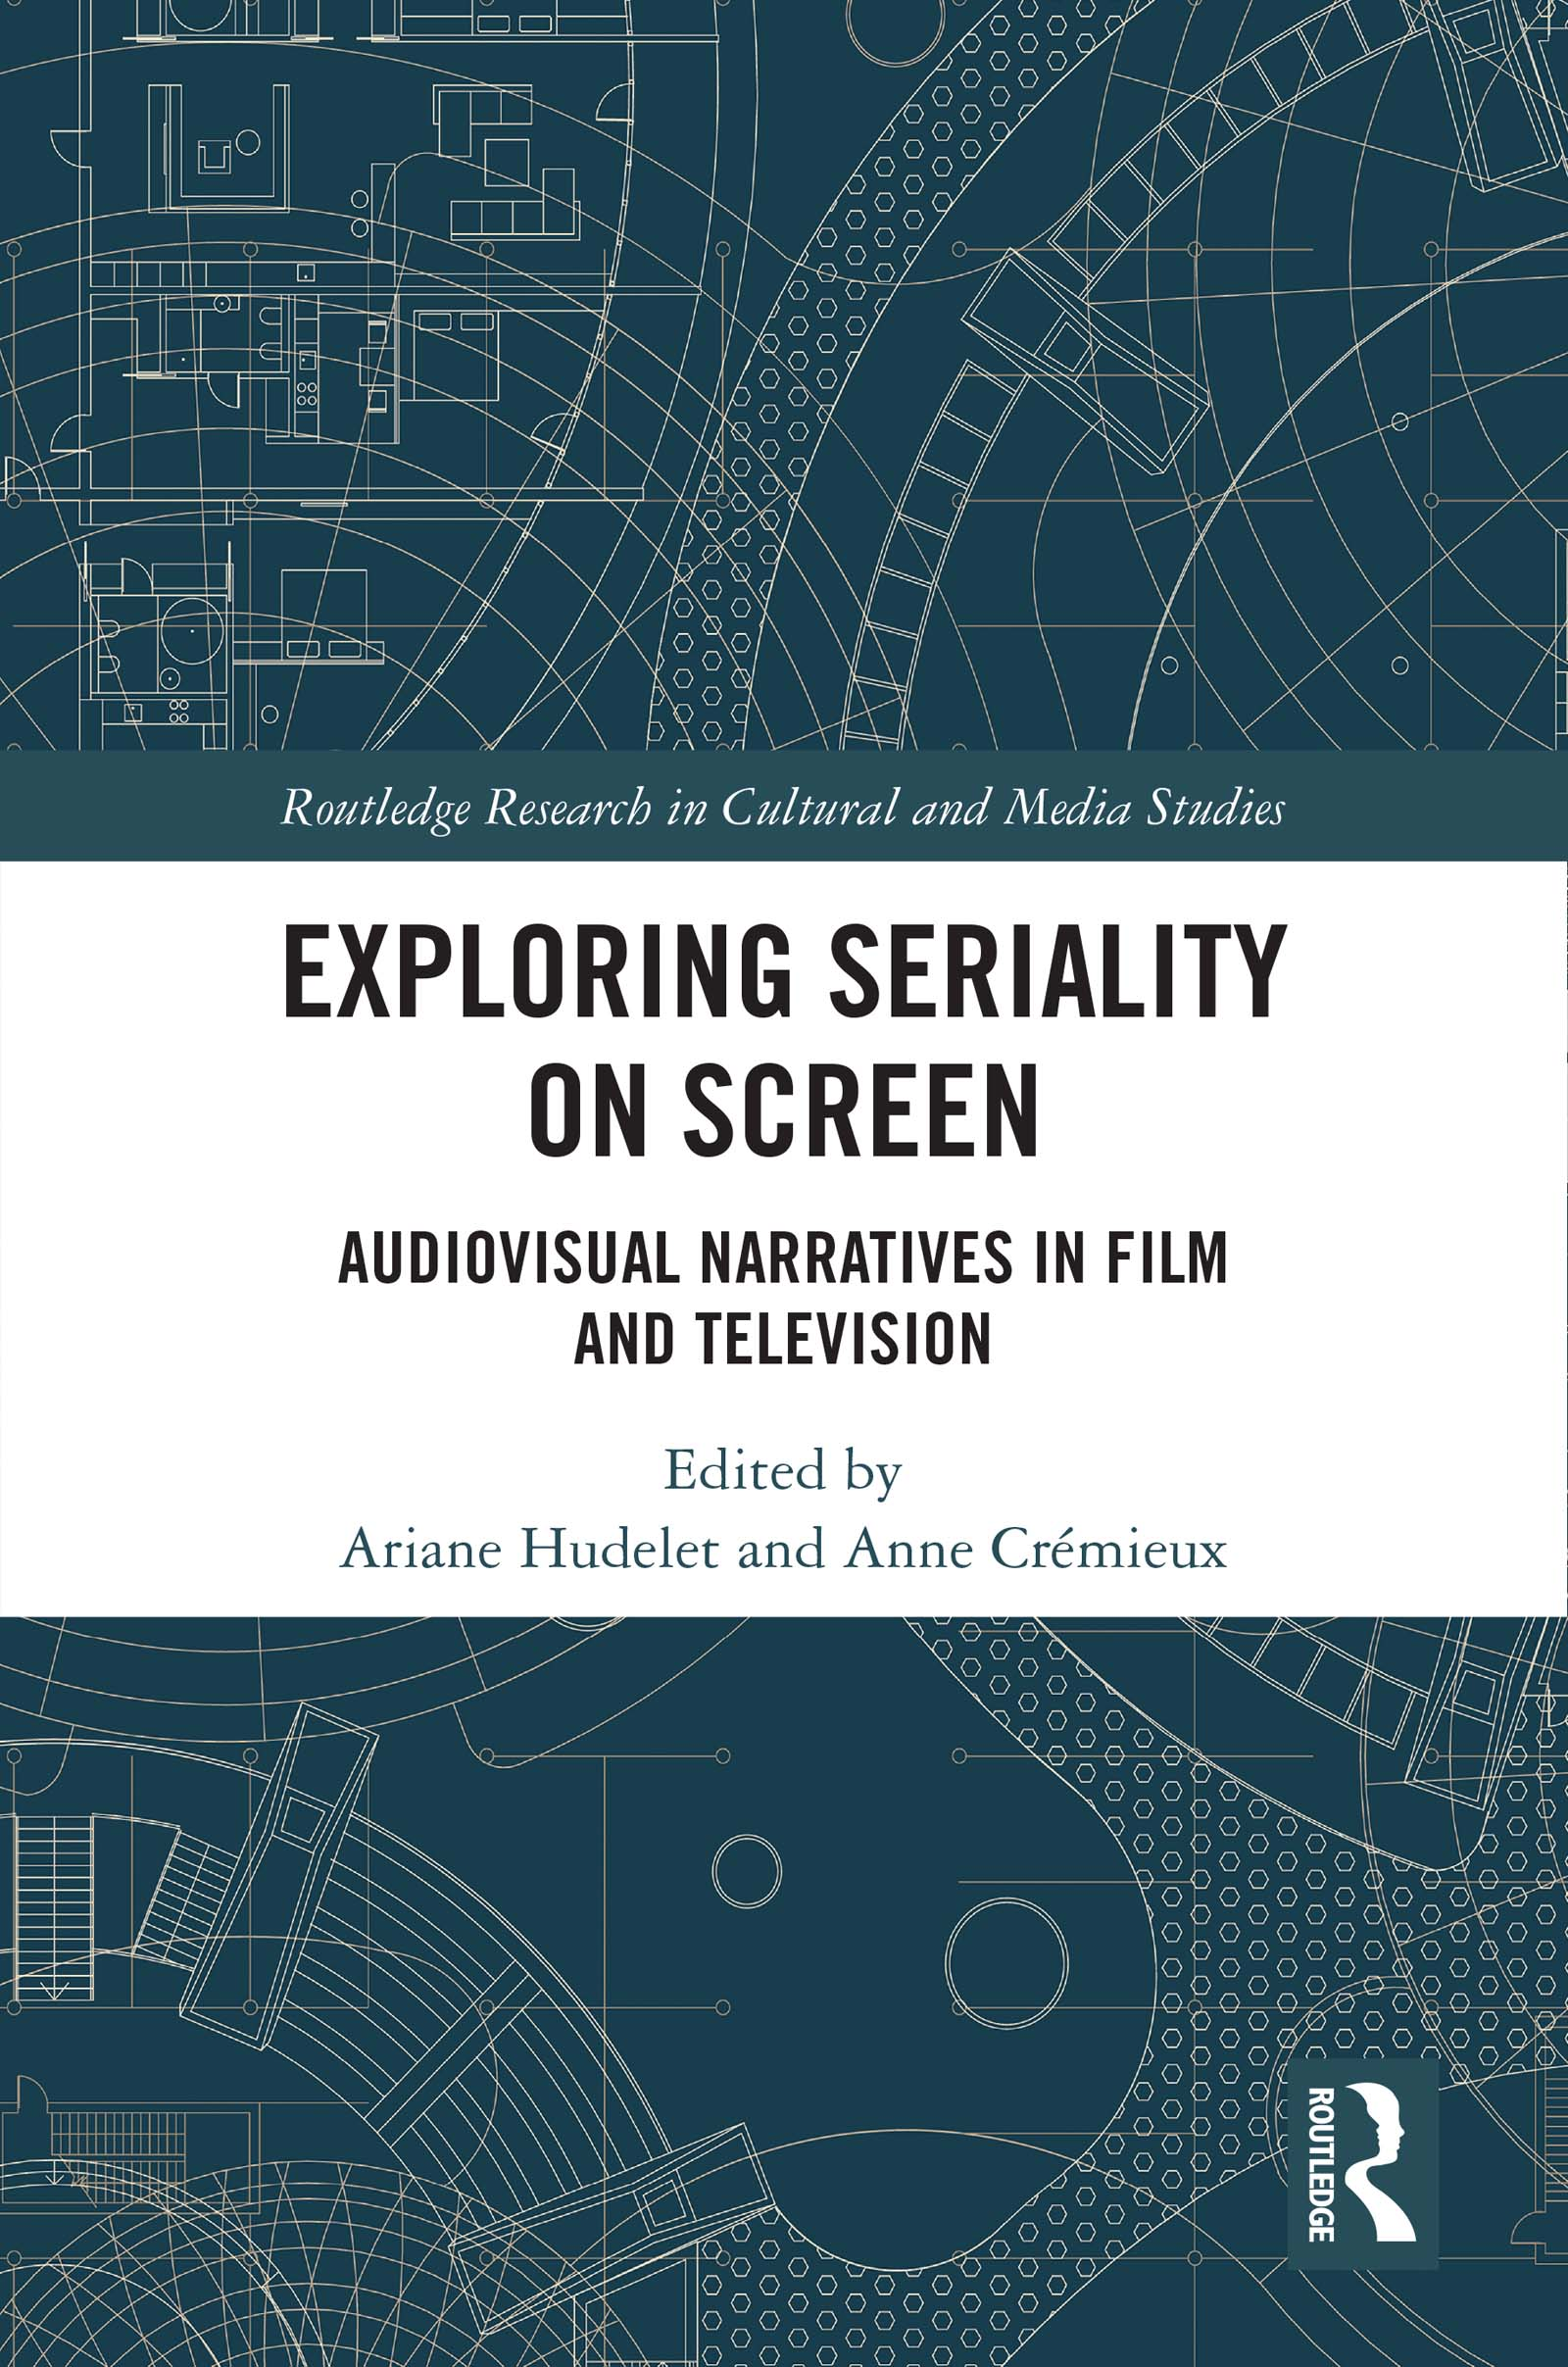 Exploring Seriality on Screen